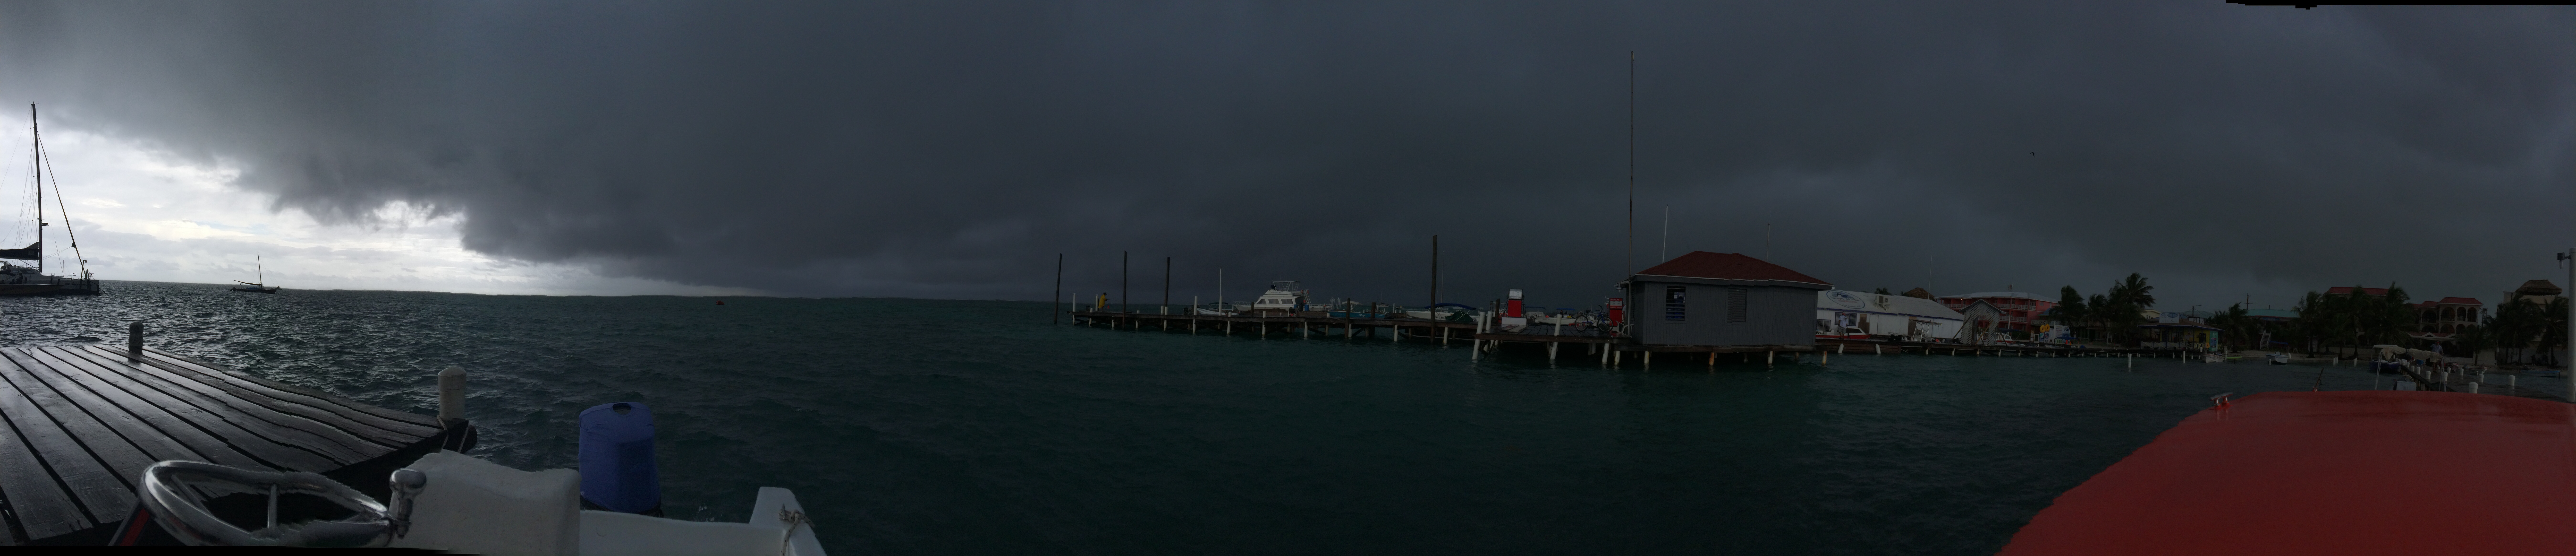 This is a great pic as I was leaving the dock heading back to Belize City/airport.  We were definitely heading into the storm.  No avoiding it - it was too big to go around - we could only go through -me- praying we would come out on the other side!